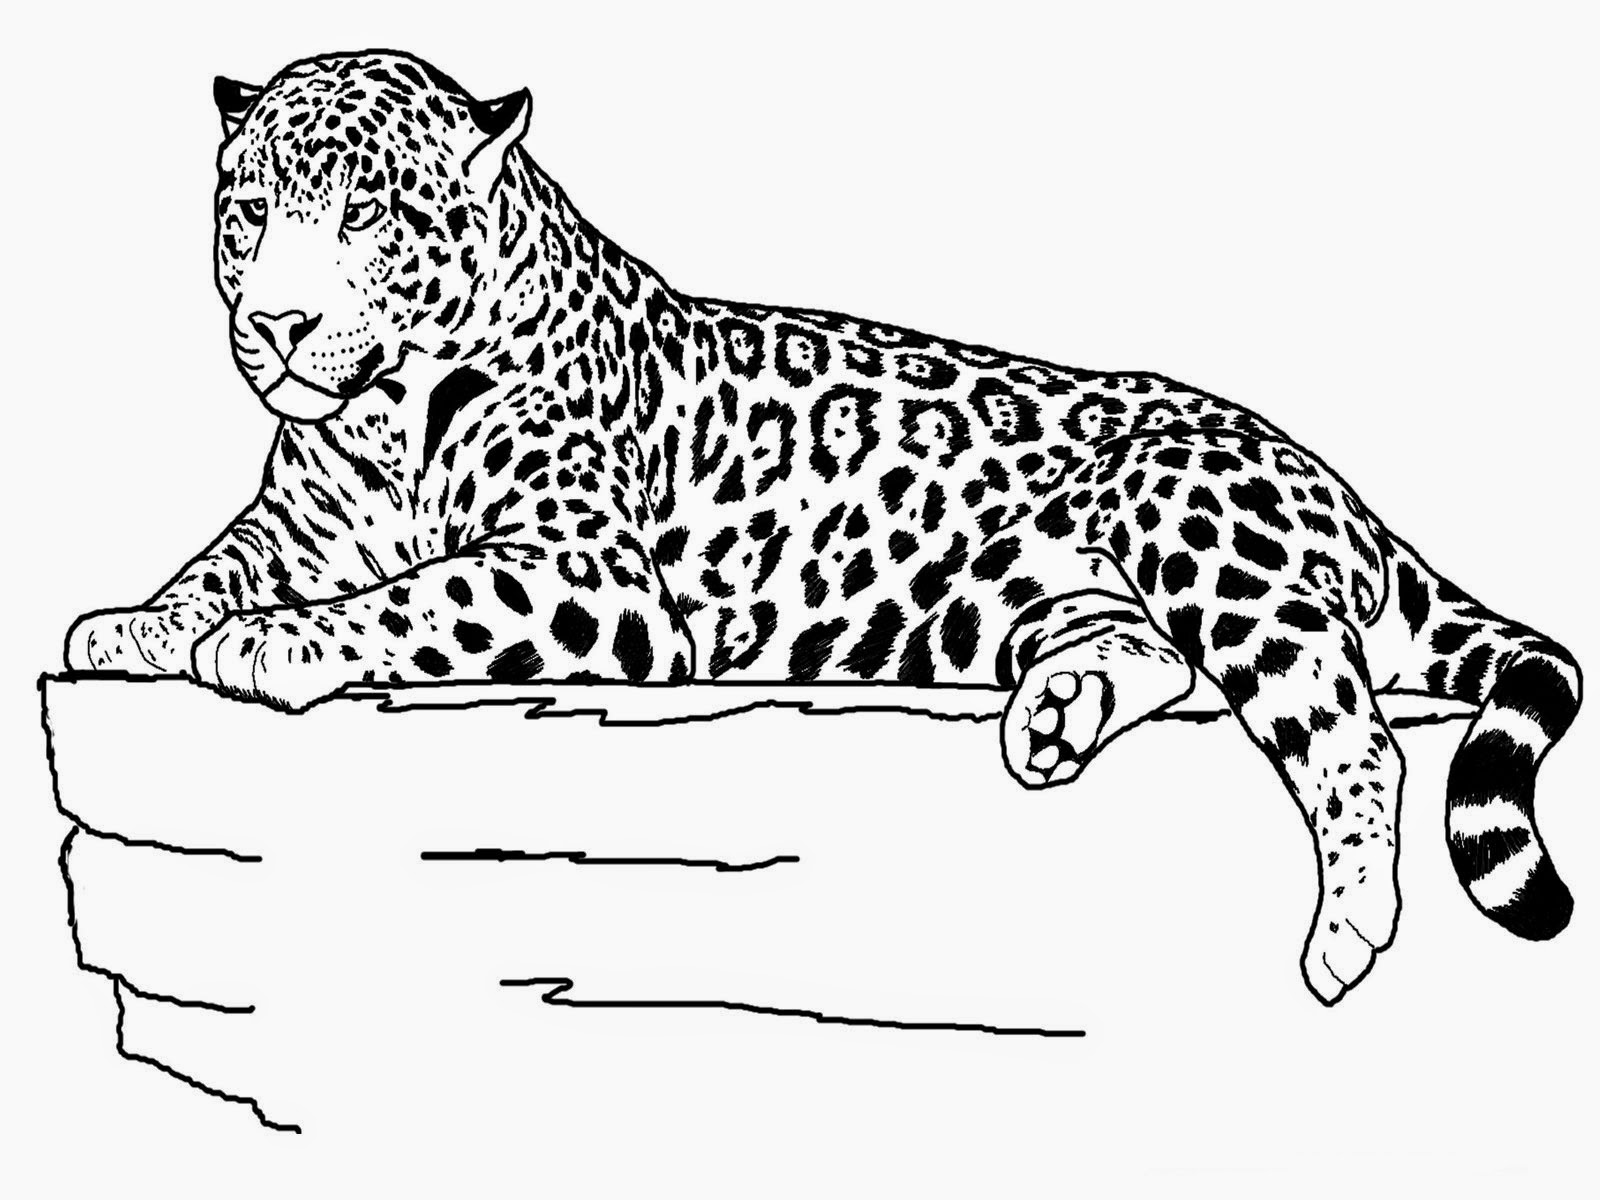 tiger images for colouring free printable tiger coloring pages for kids for colouring images tiger 1 1